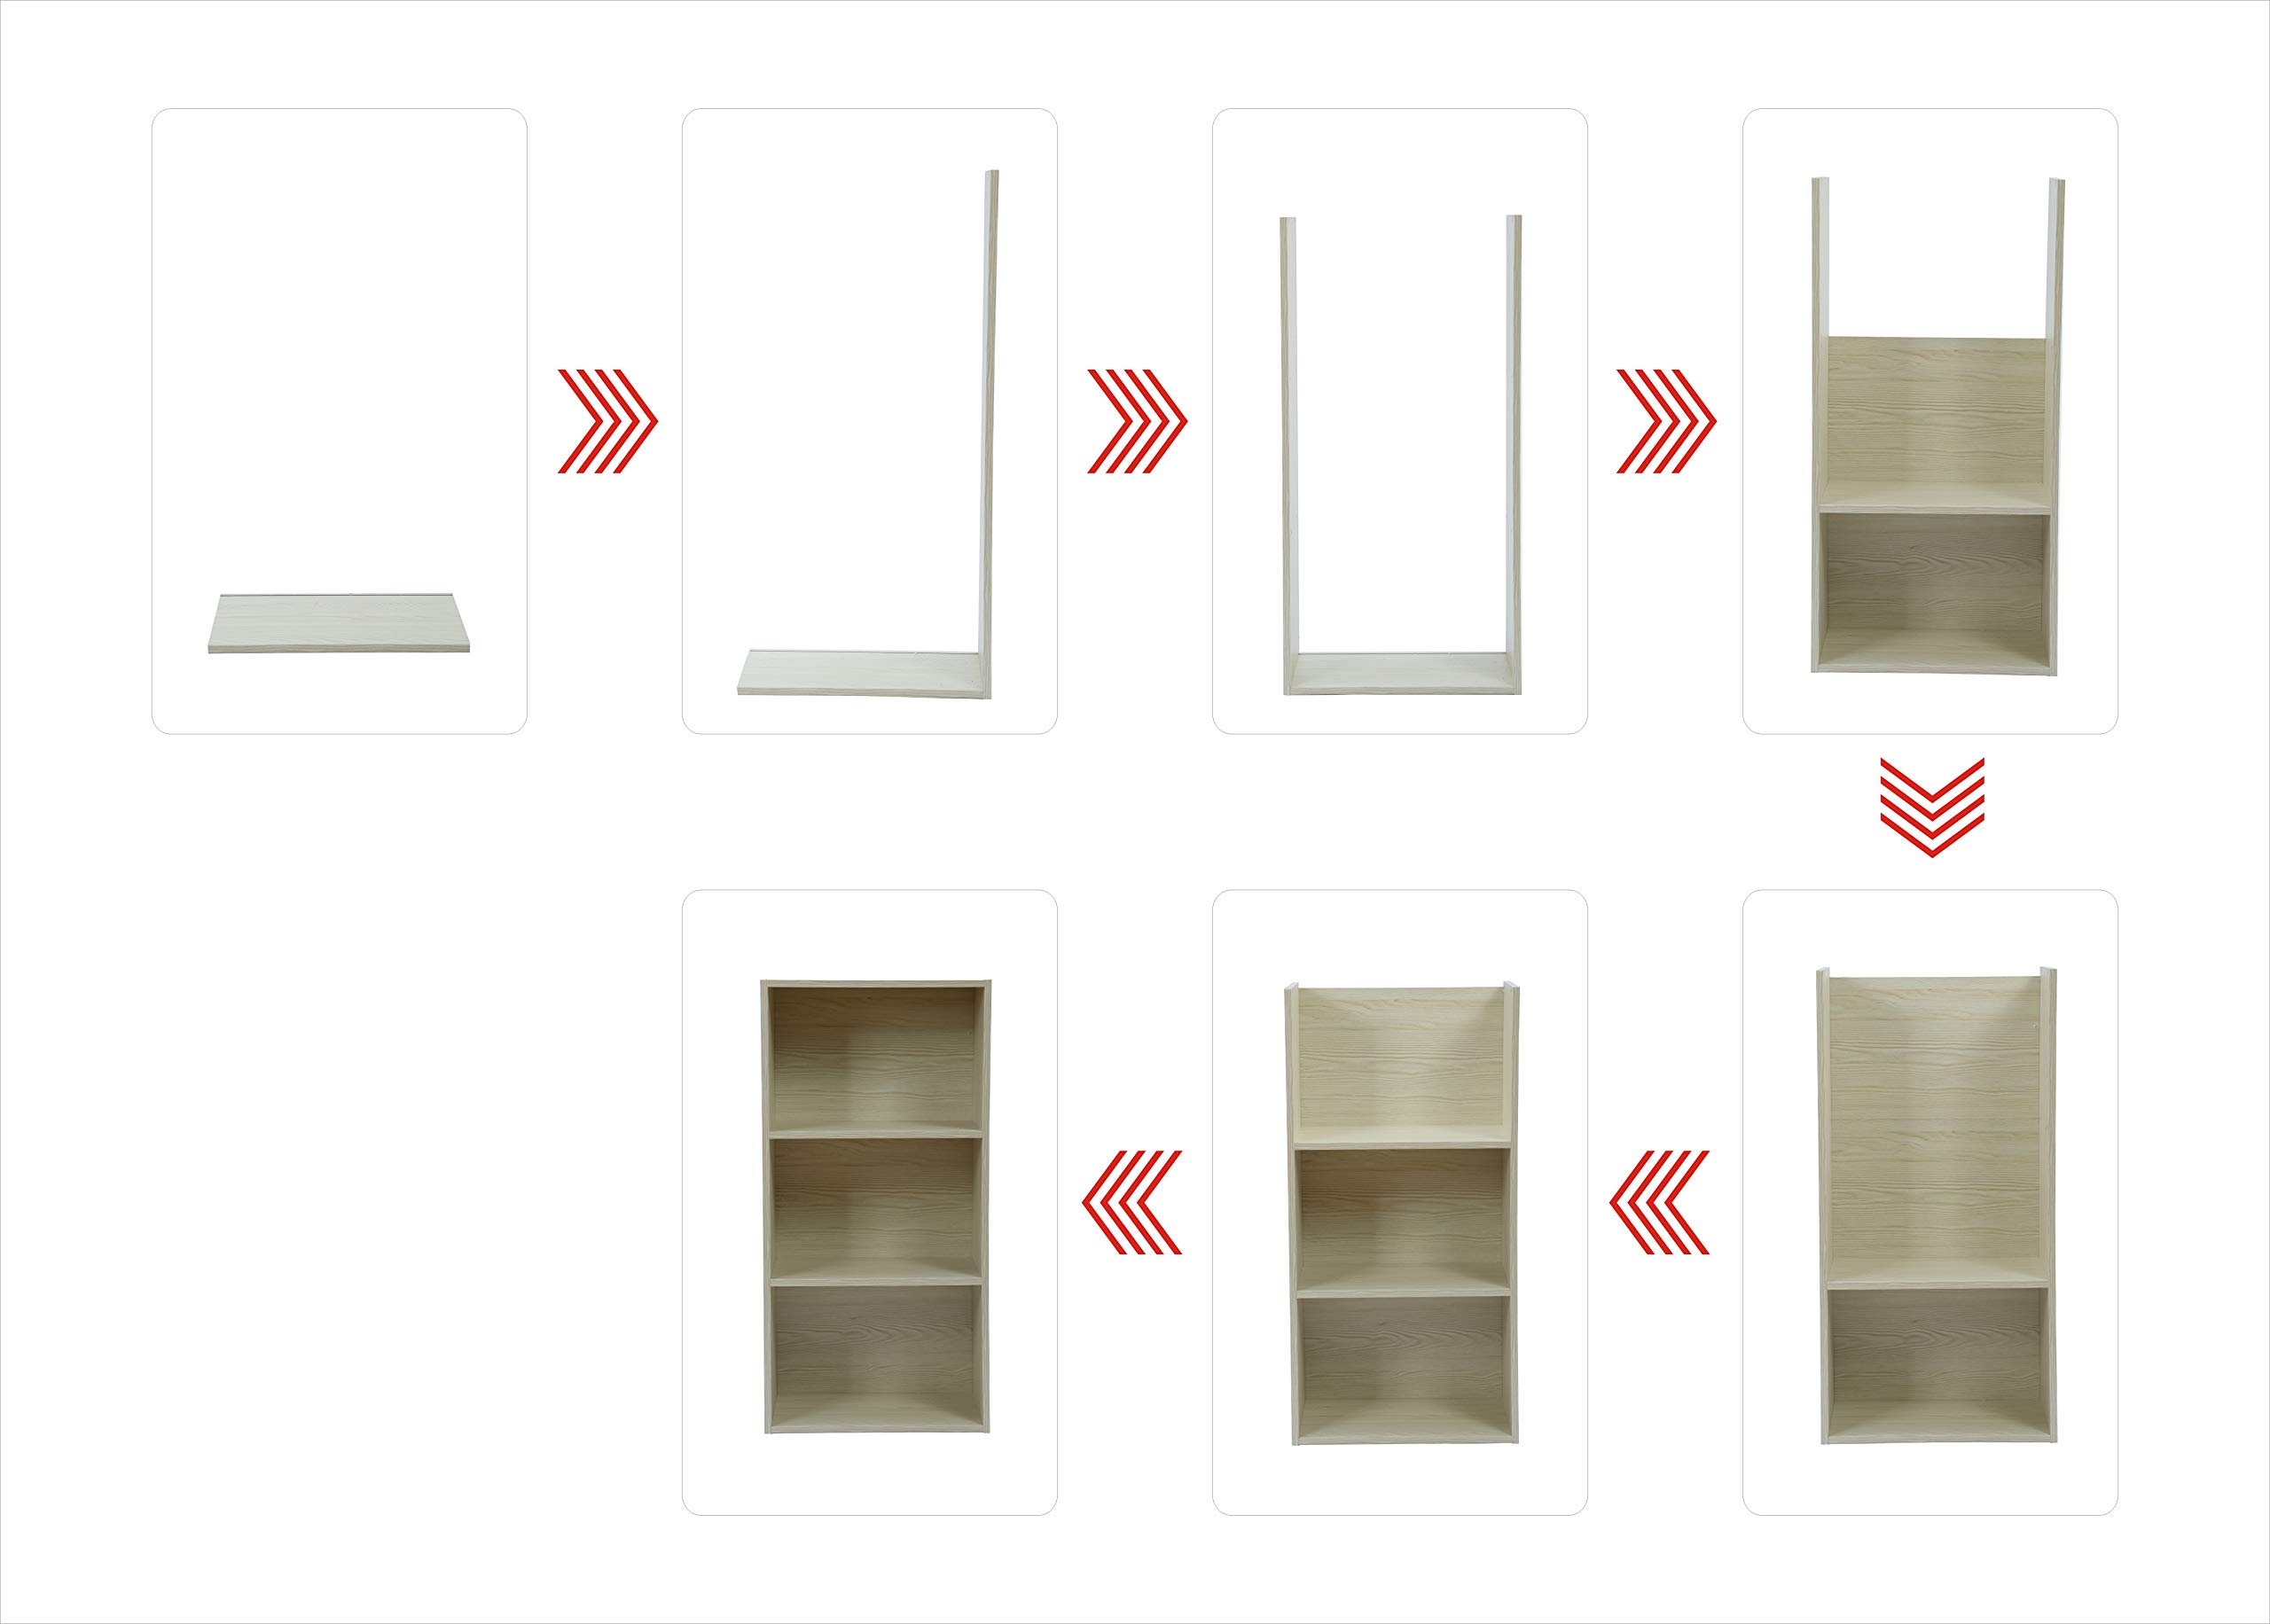 JEROAL 3-Shelf Wooden Bookshelf, 3 Cube Storage Organizer, Display Bookshelf Storage Organizer for Books, Pictures, Decorations, White Oak by JEROAL (Image #5)